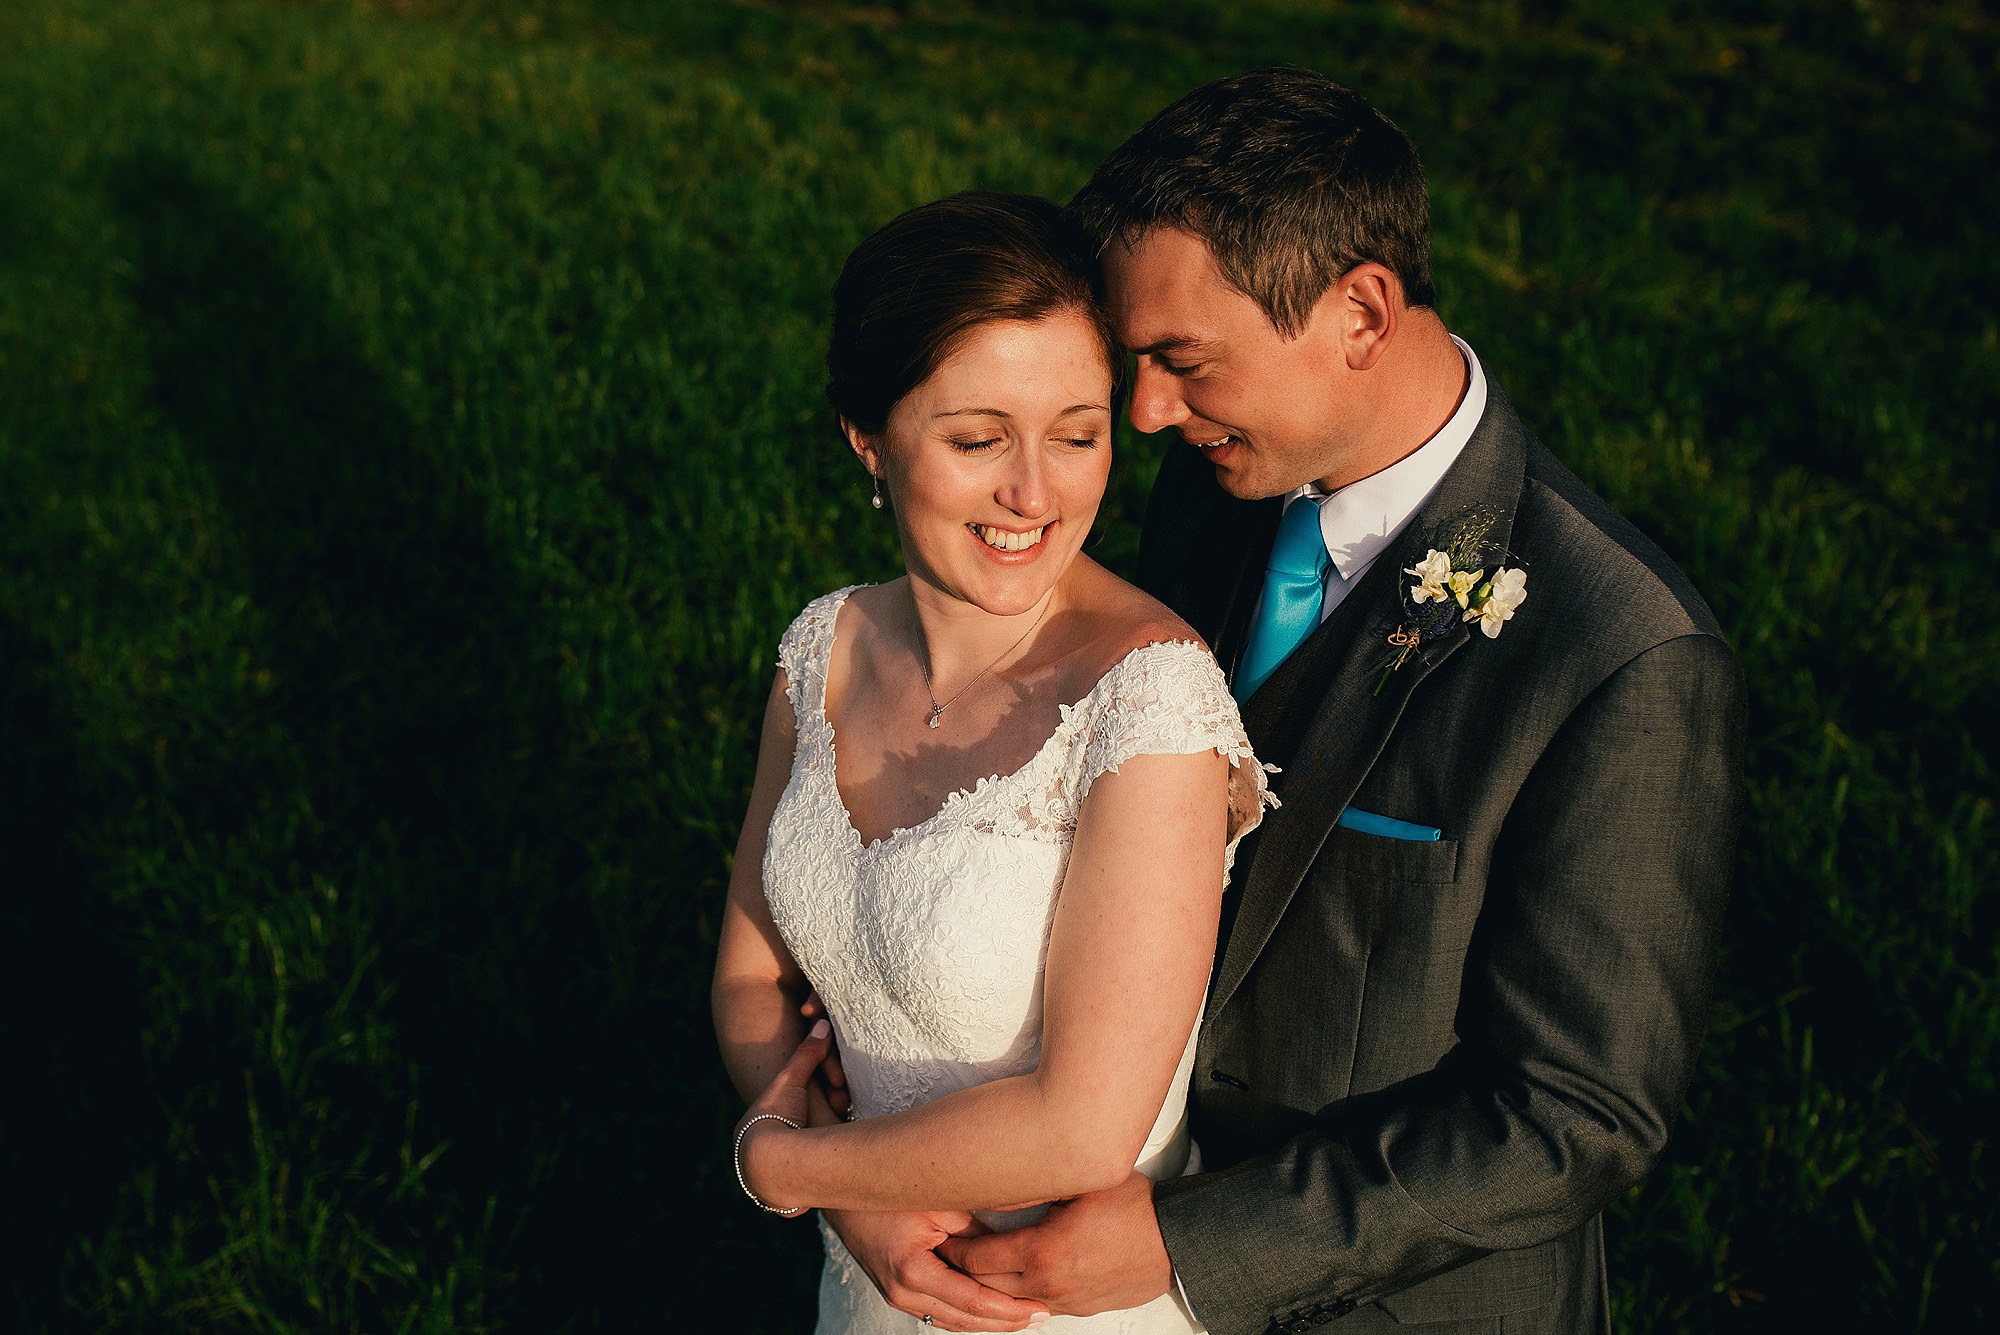 Relaxed outdoor wedding couple portraits